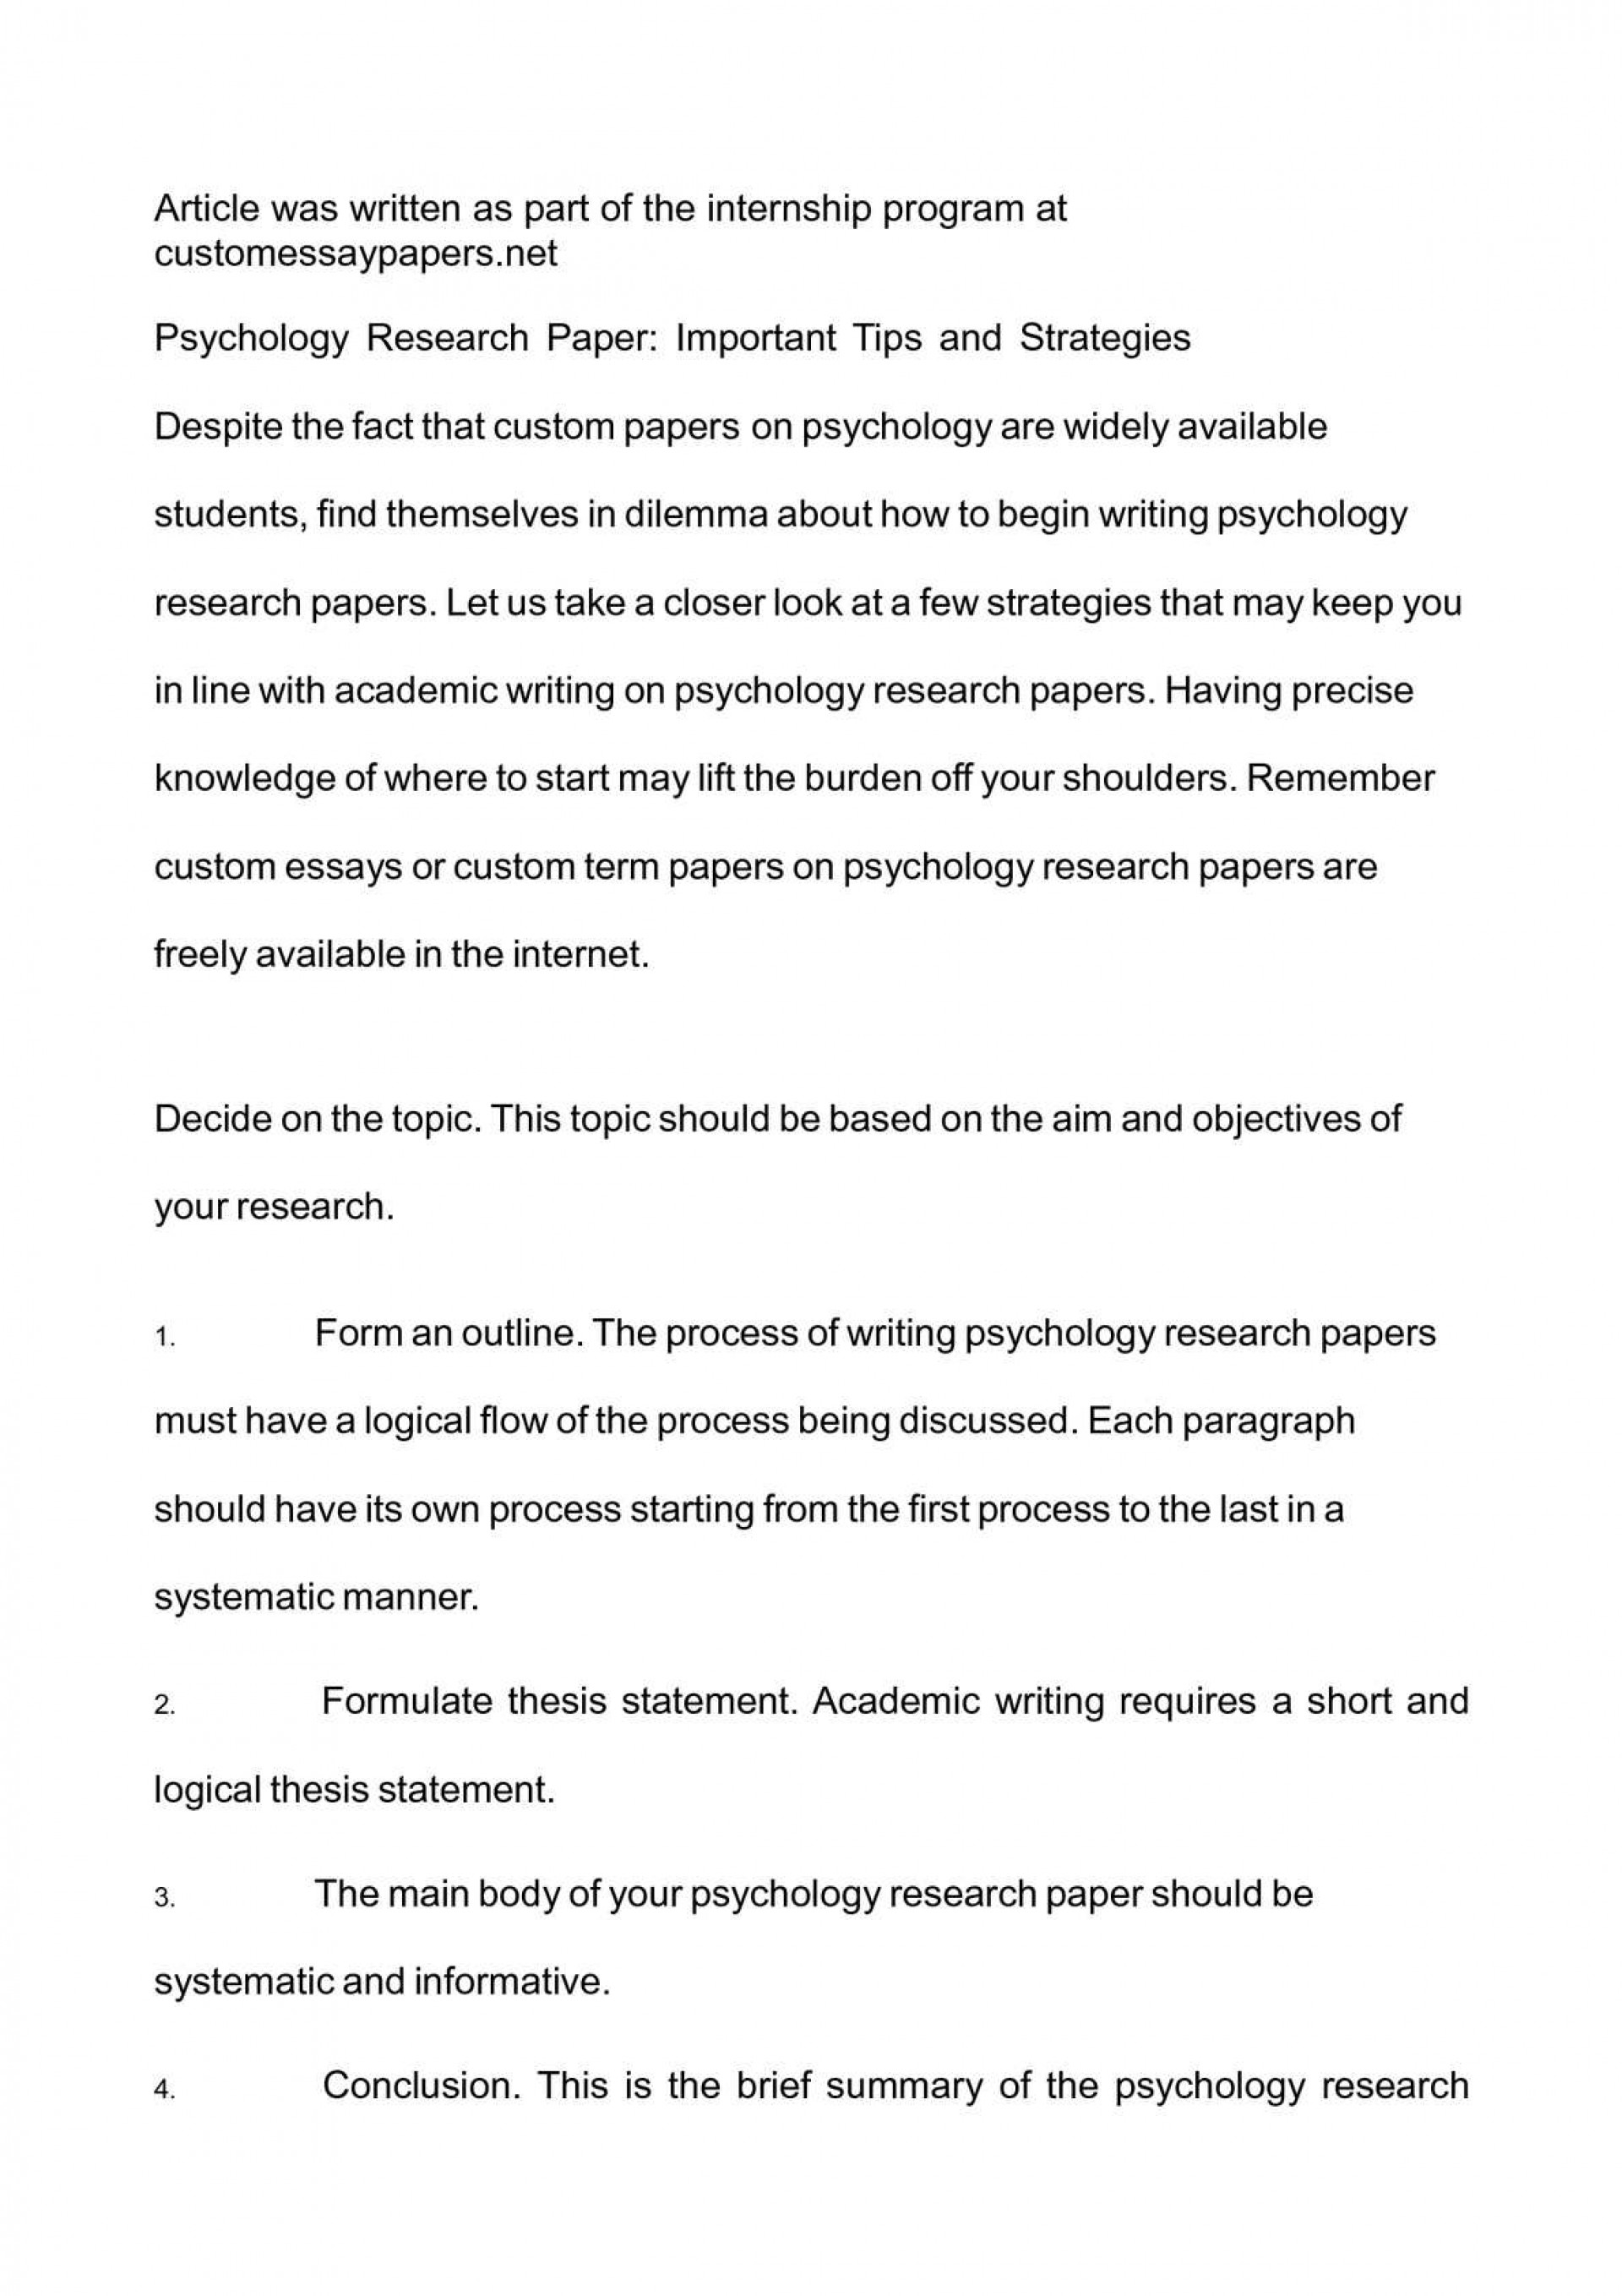 019 Psychology Research Paper Topics Striking Depression Papers On Dreams 1920